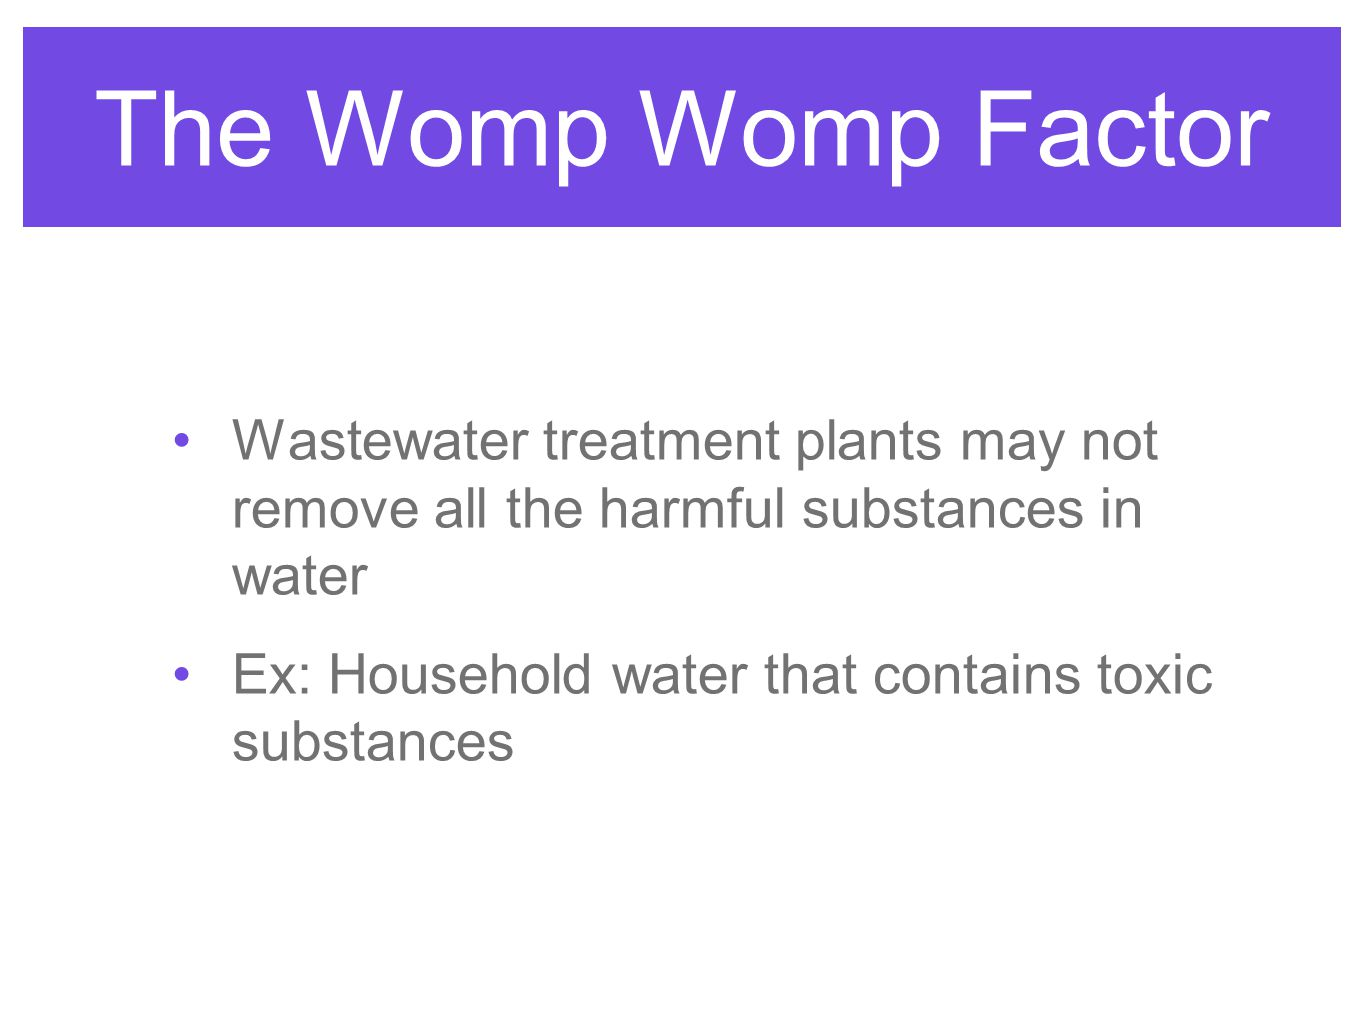 The Womp Womp Factor Wastewater treatment plants may not remove all the harmful substances in water.